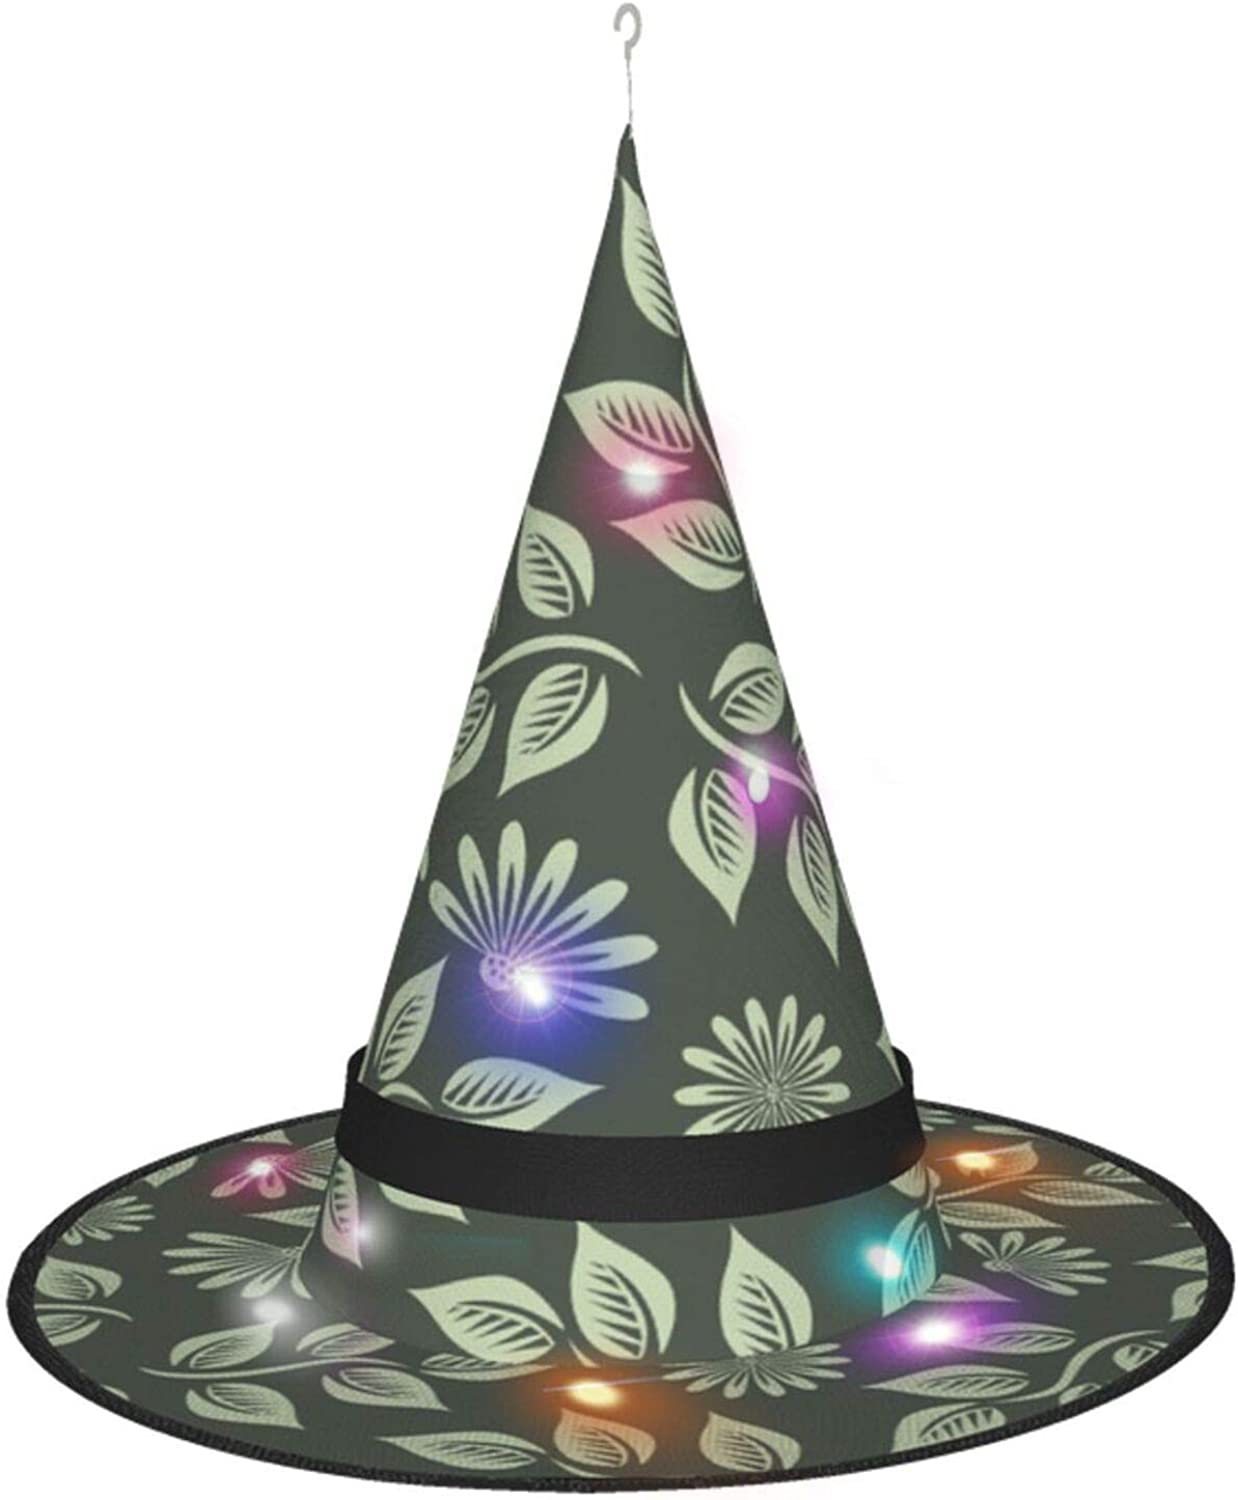 Beauty products Flowers New item Leaf Halloween Witch Hat wit Accessory for Costume Party